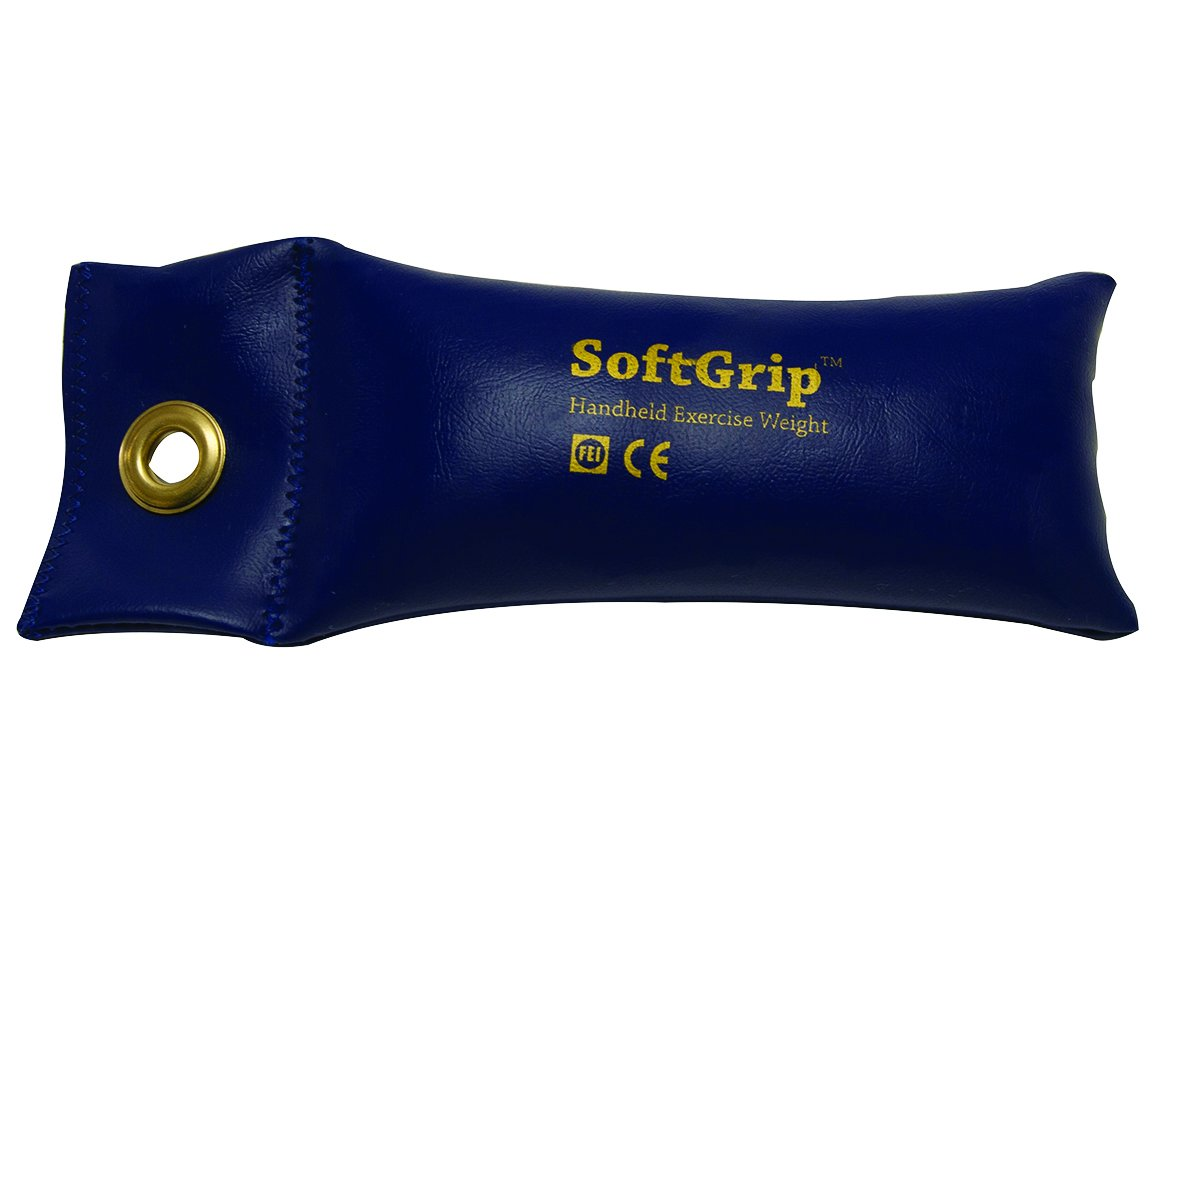 CanDo 10-0354 Soft Grip Hand Weight, 2.5 lb, Blue by Cando